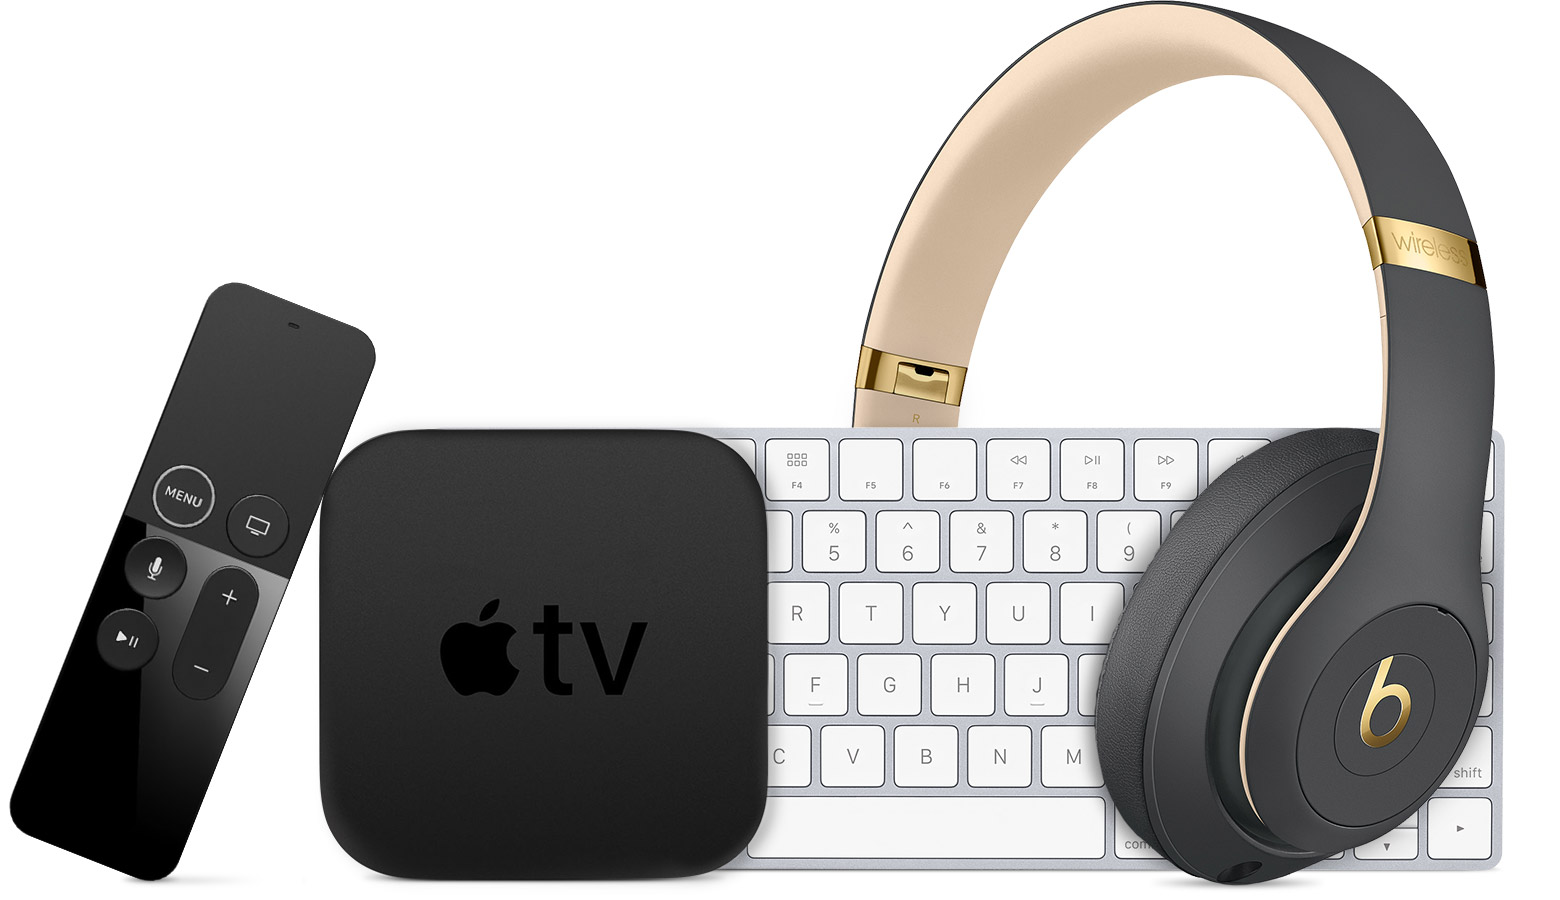 Use Bluetooth accessories with your Apple TV - Apple Support